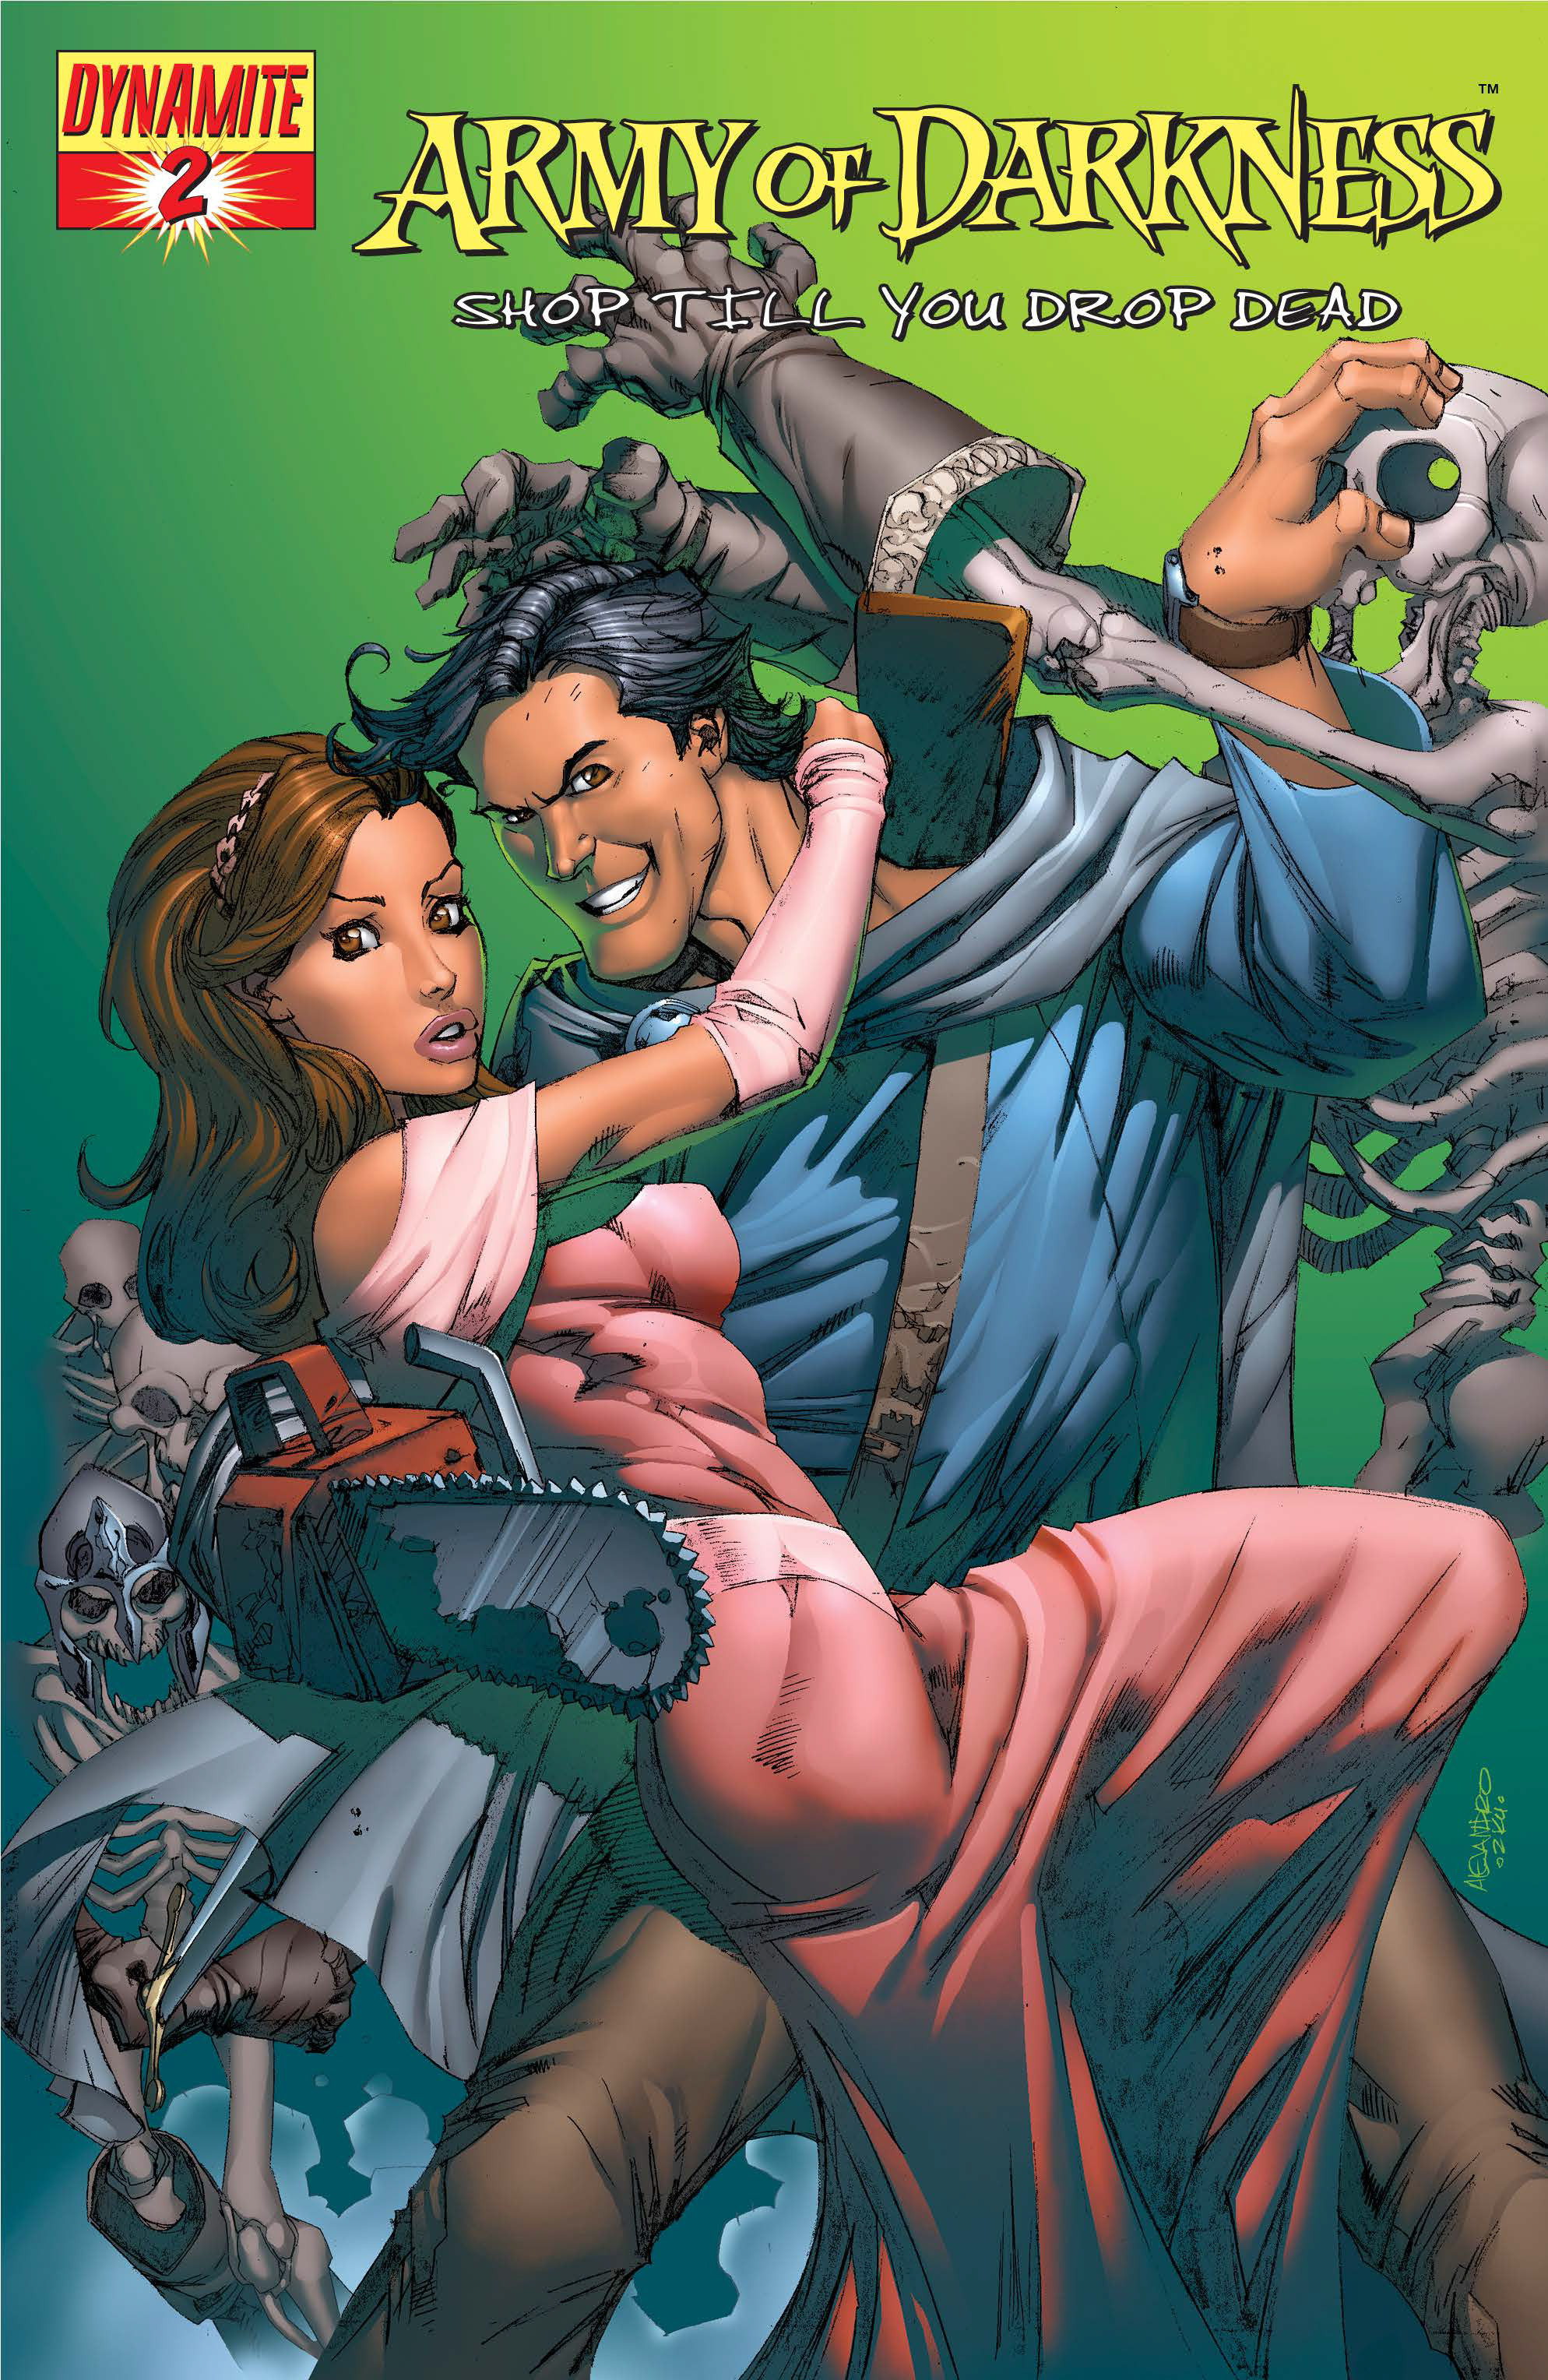 Read online Army of Darkness: Shop Till You Drop Dead comic -  Issue #Army of Darkness: Shop Till You Drop Dead TPB - 34